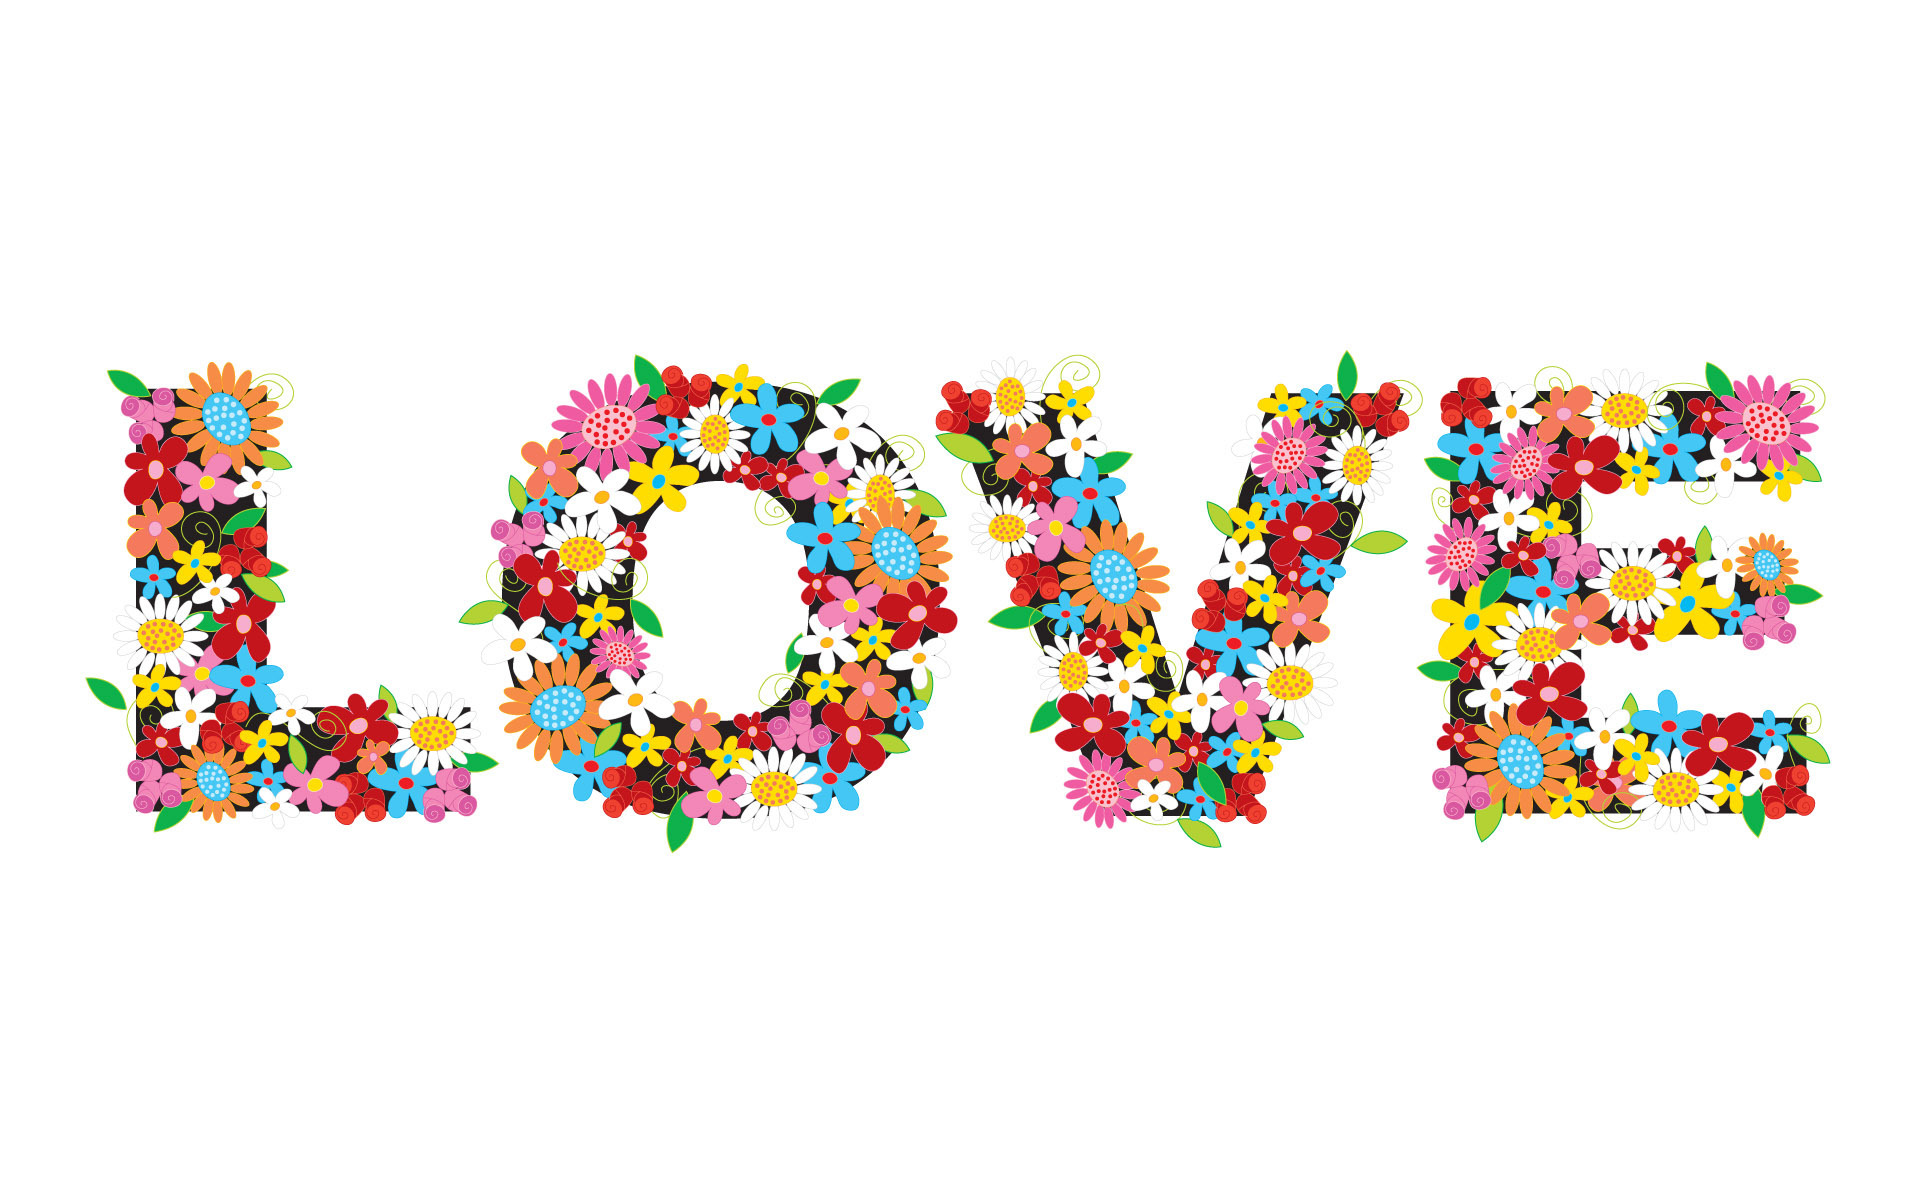 Free Scenery Wallpaper   Shows Flower Love  The Best Choice For Lovers